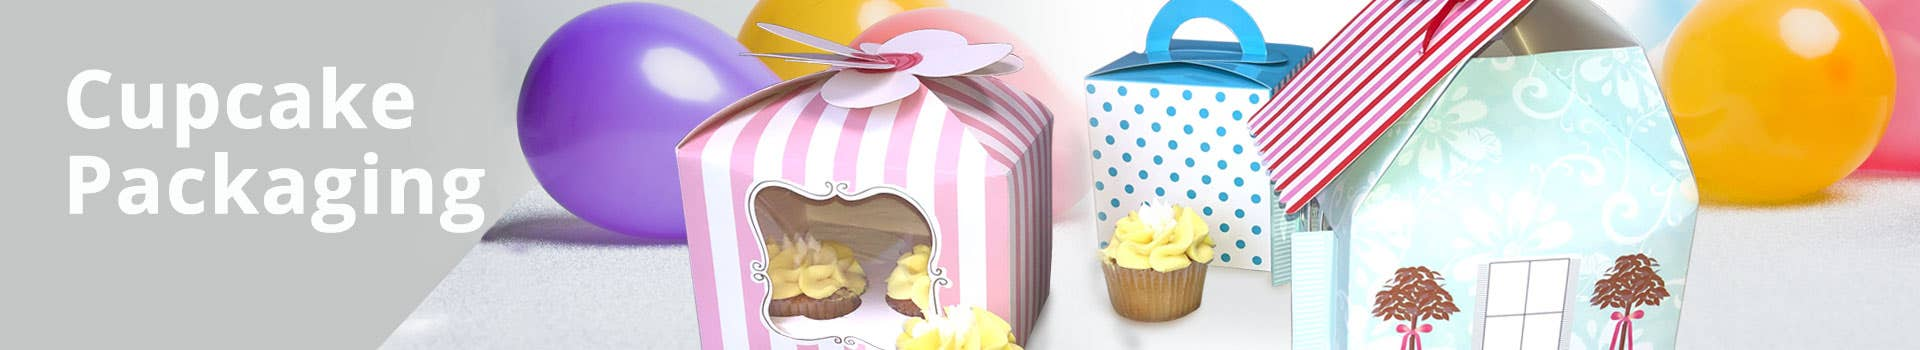 Paper Cupcake Packaging